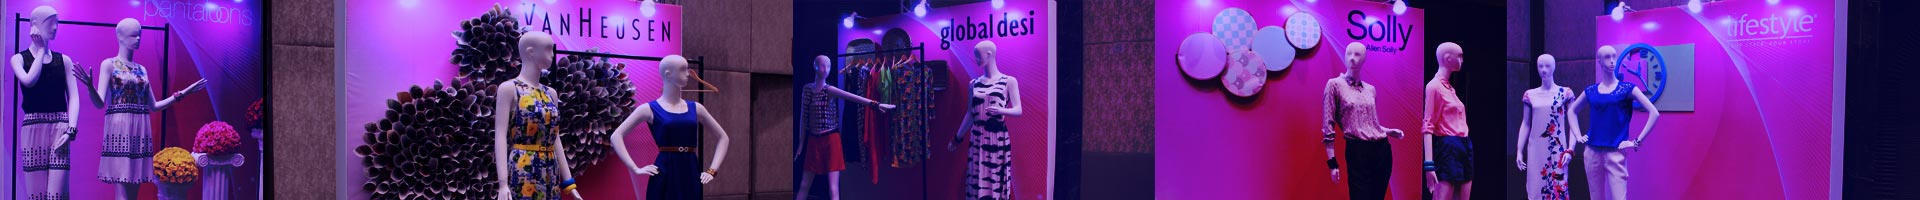 LIVA - AND, Global Desi, Allen Solly Fashion Collections